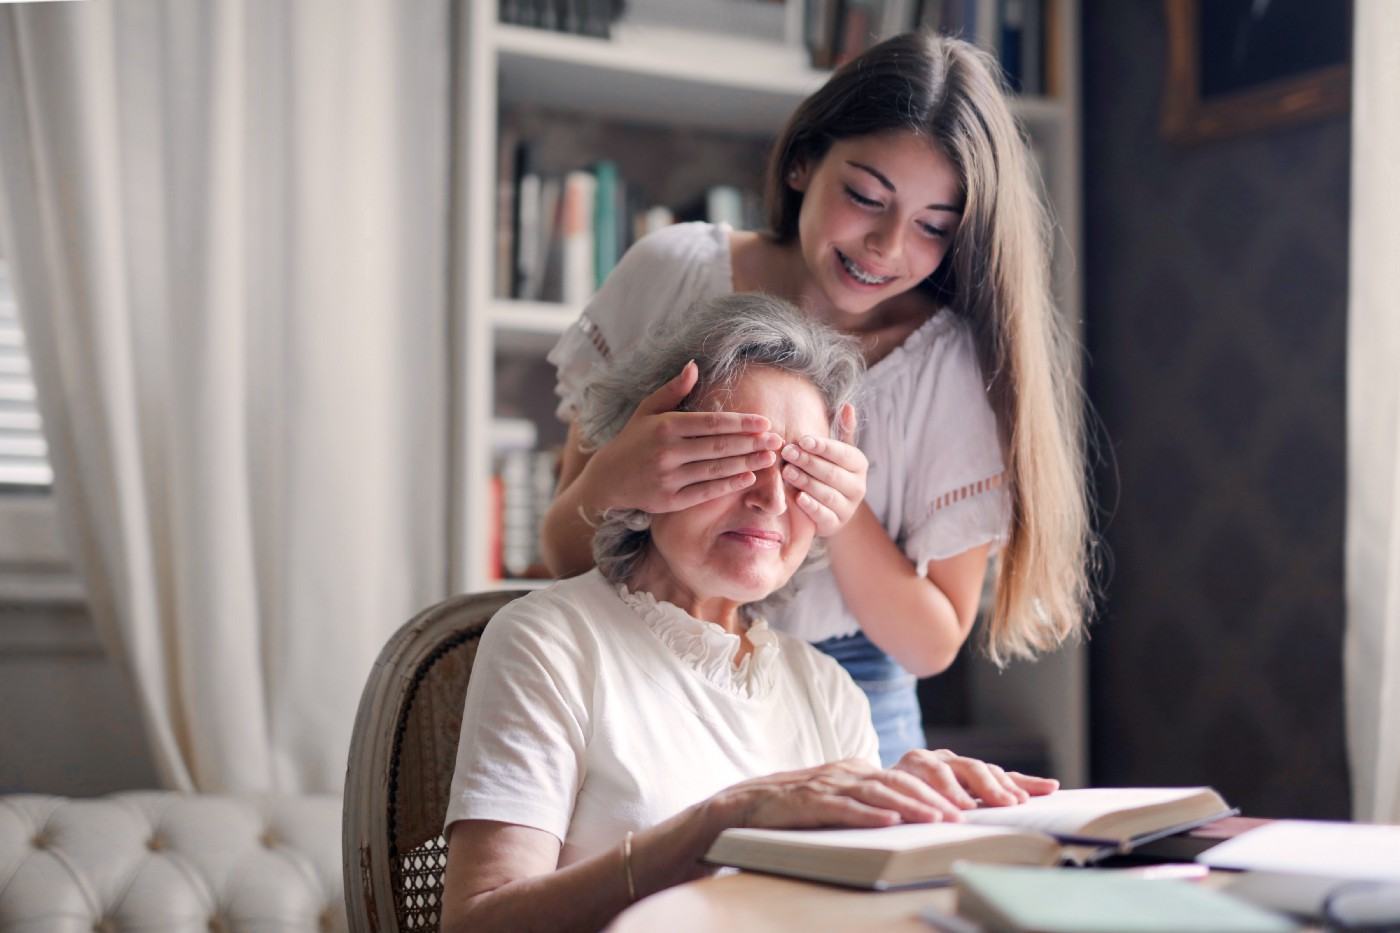 A young woman suprises her grandmother